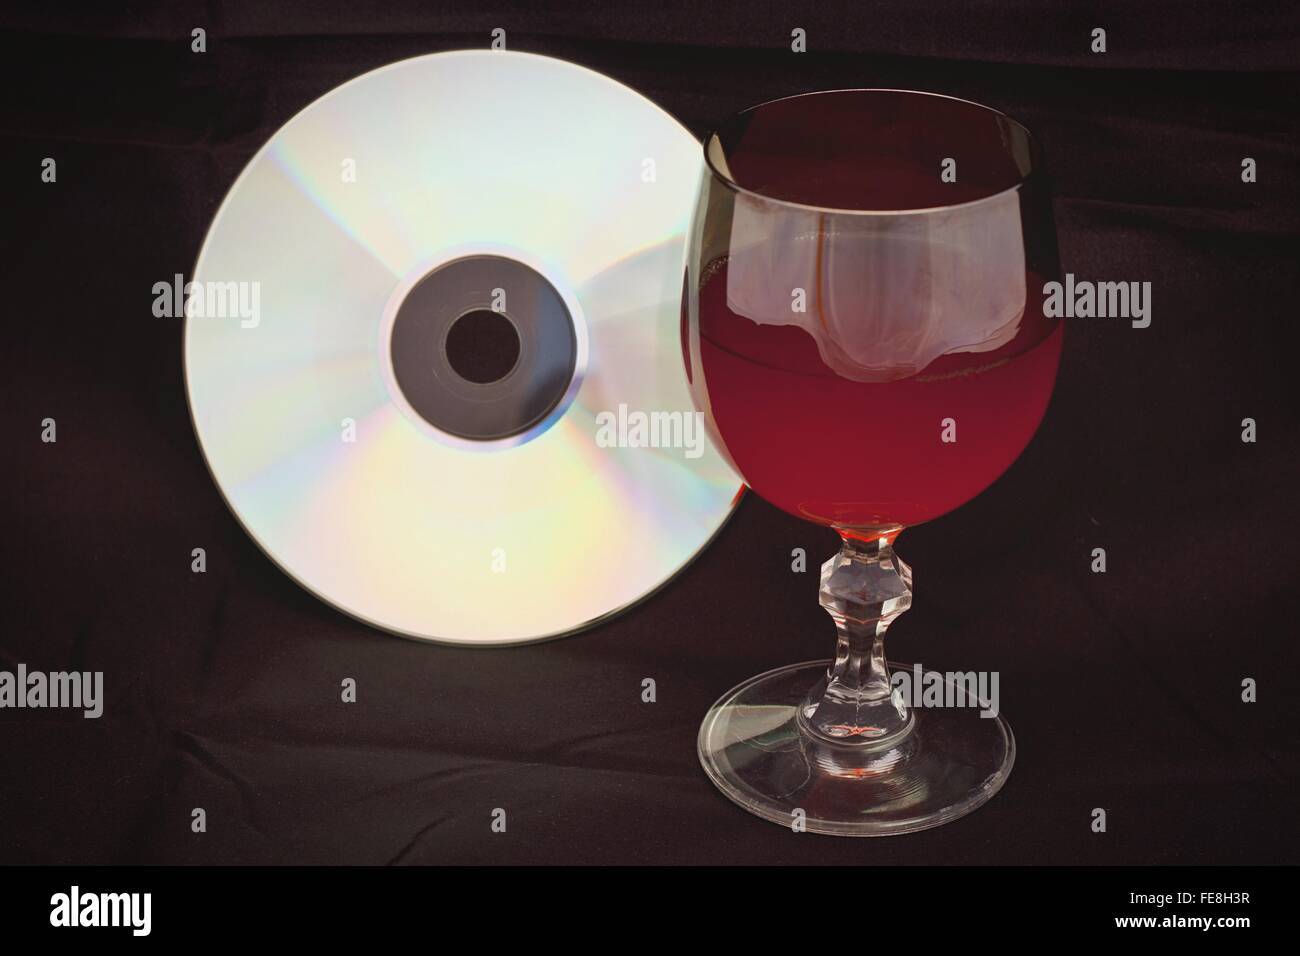 Red Wine In Glass By Compact Disc On Seat - Stock Image